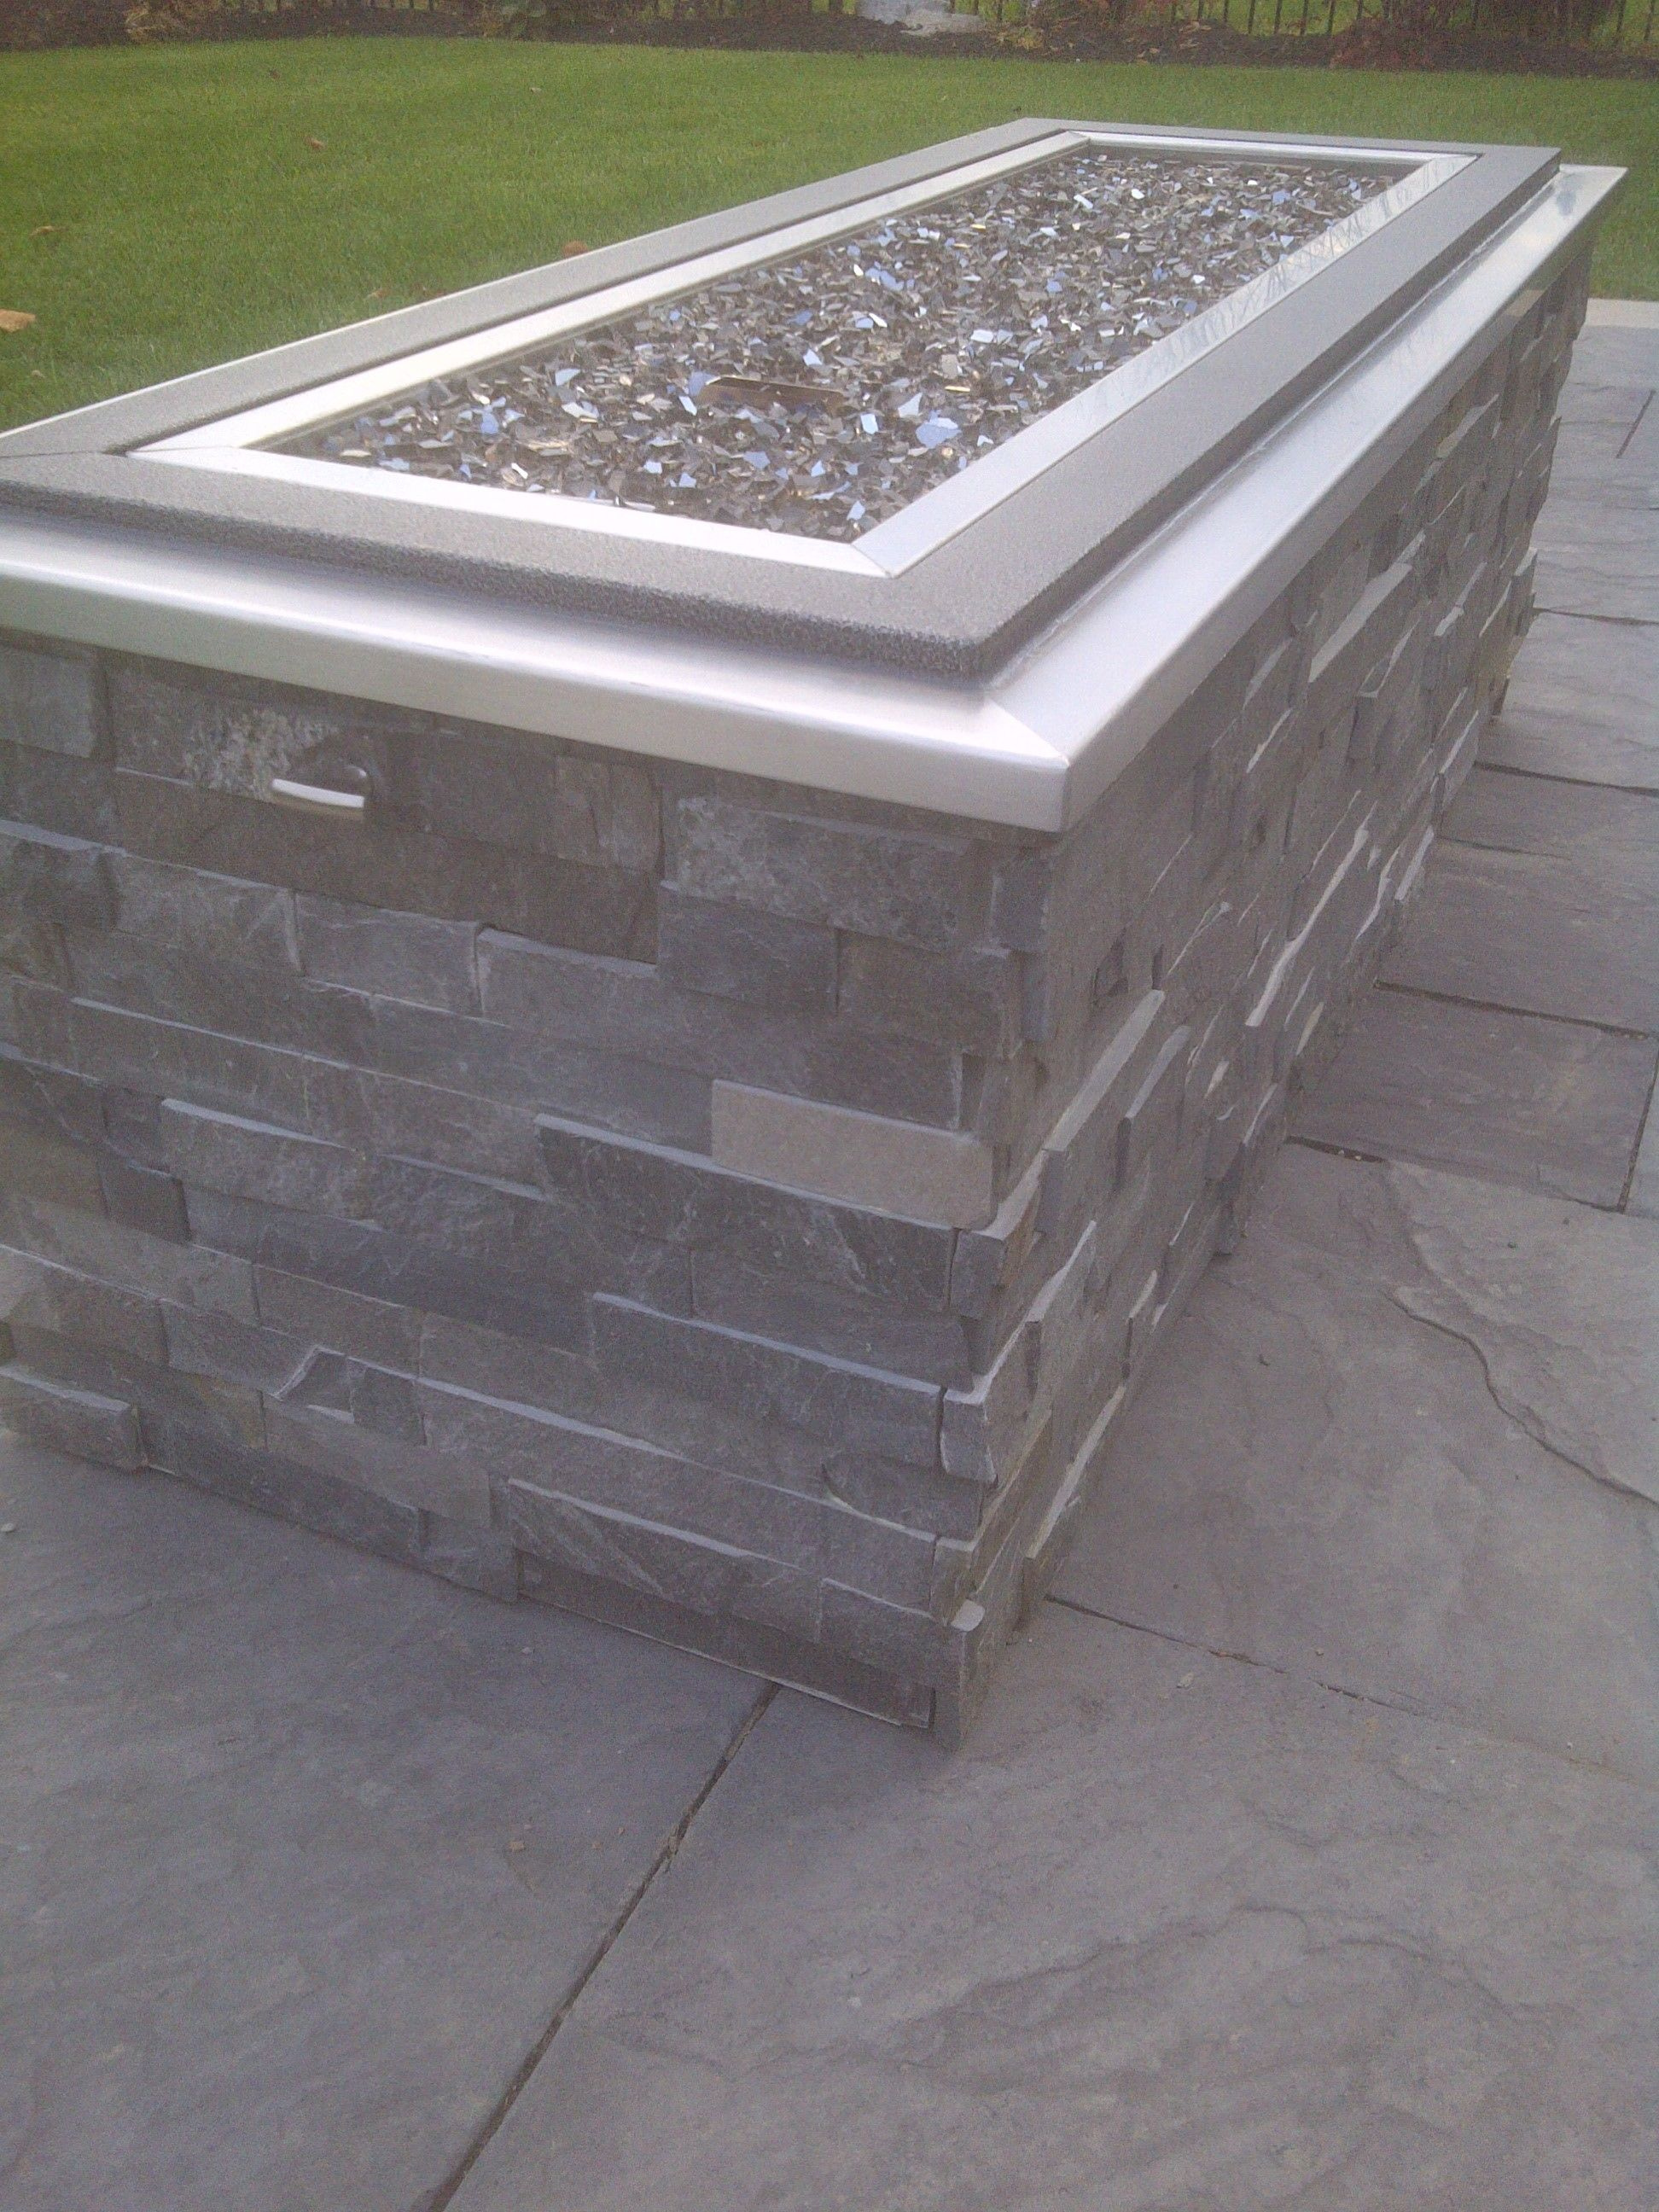 Raised Gas Fire Pit With Crushed Glass Stone Cladding And